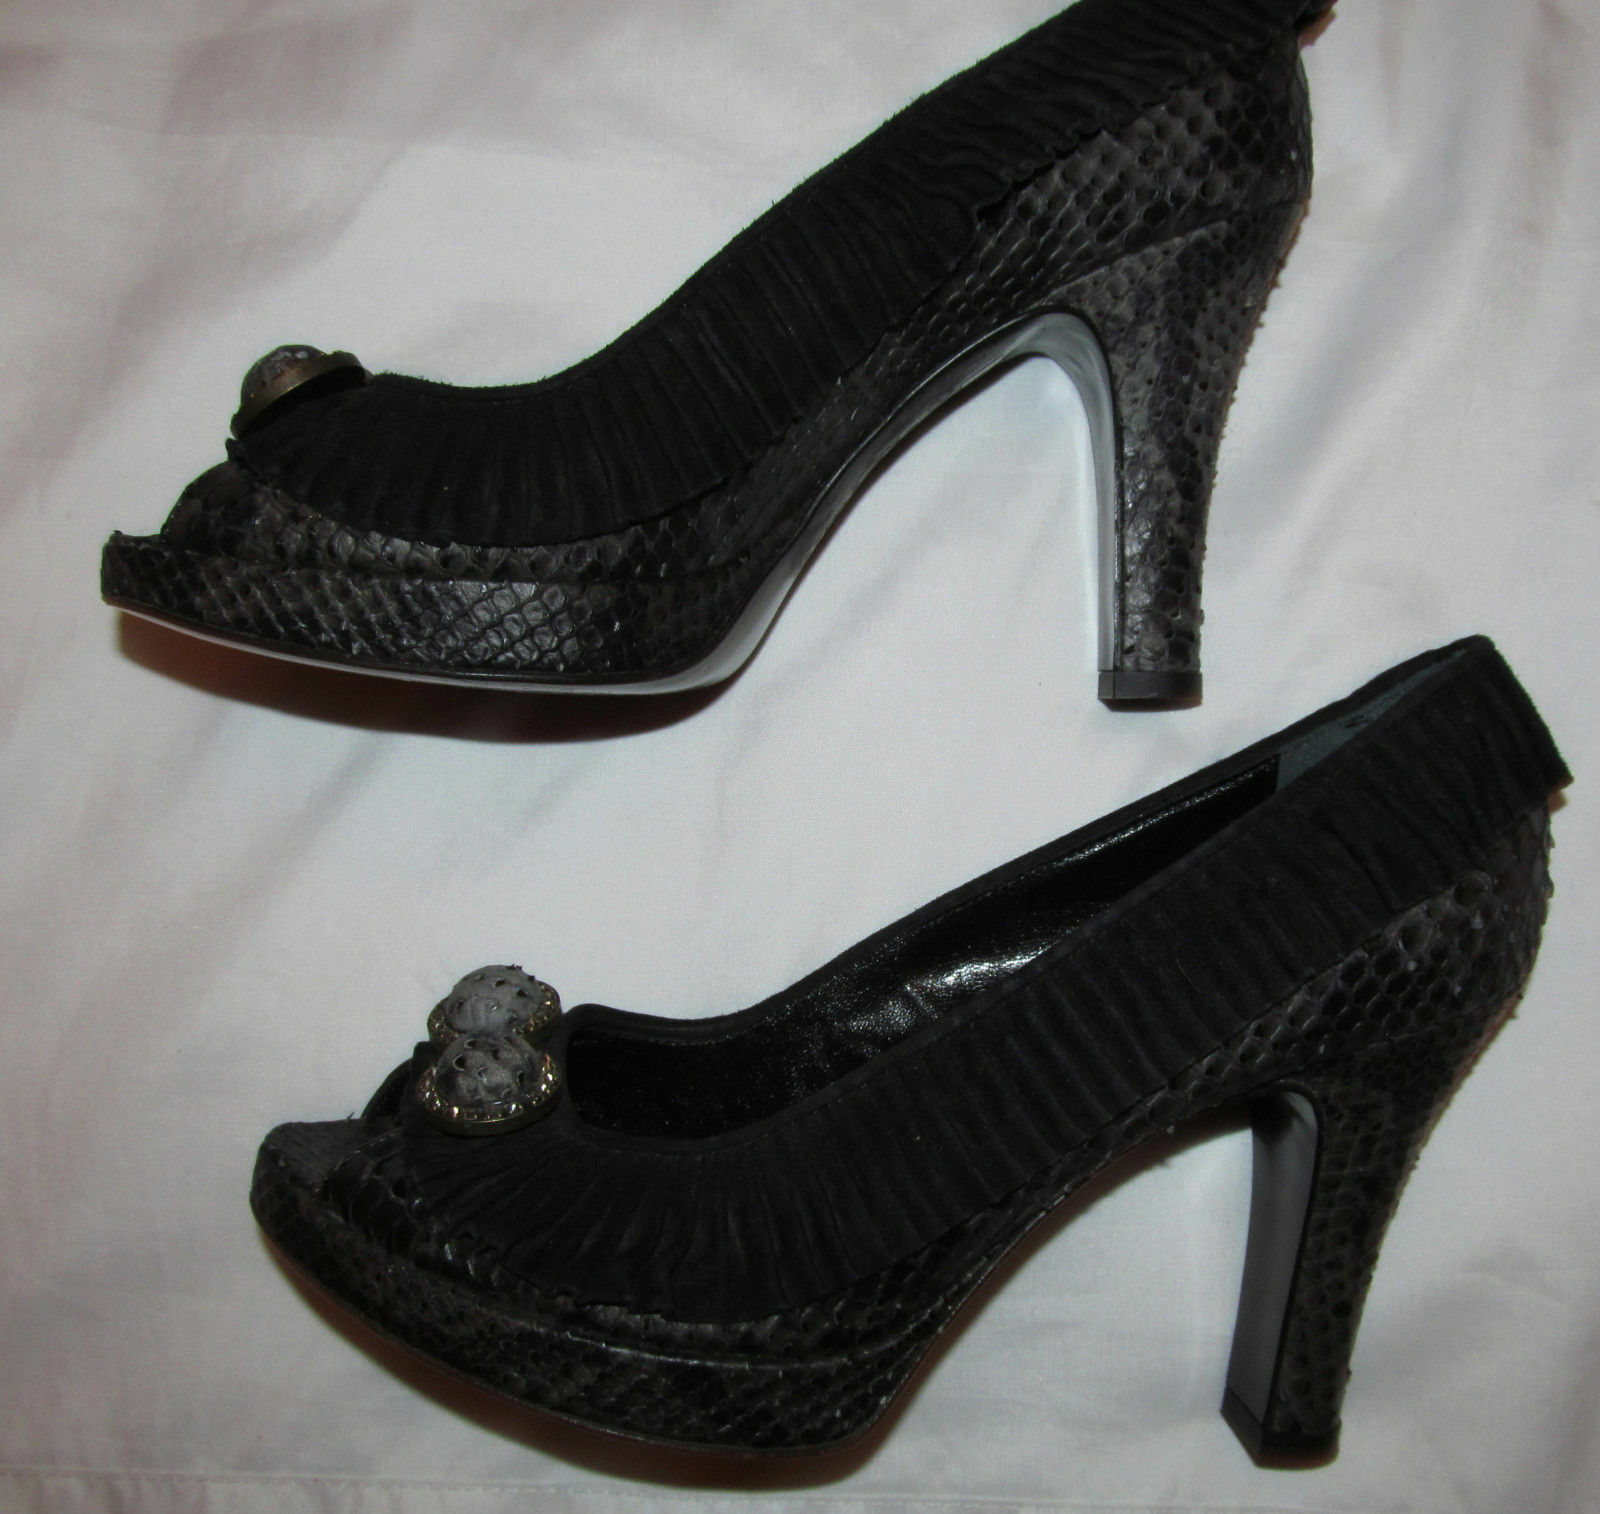 ISABELLA FIORE ruffled suede accent peep toe snaKe python leather shoes 8 M ***